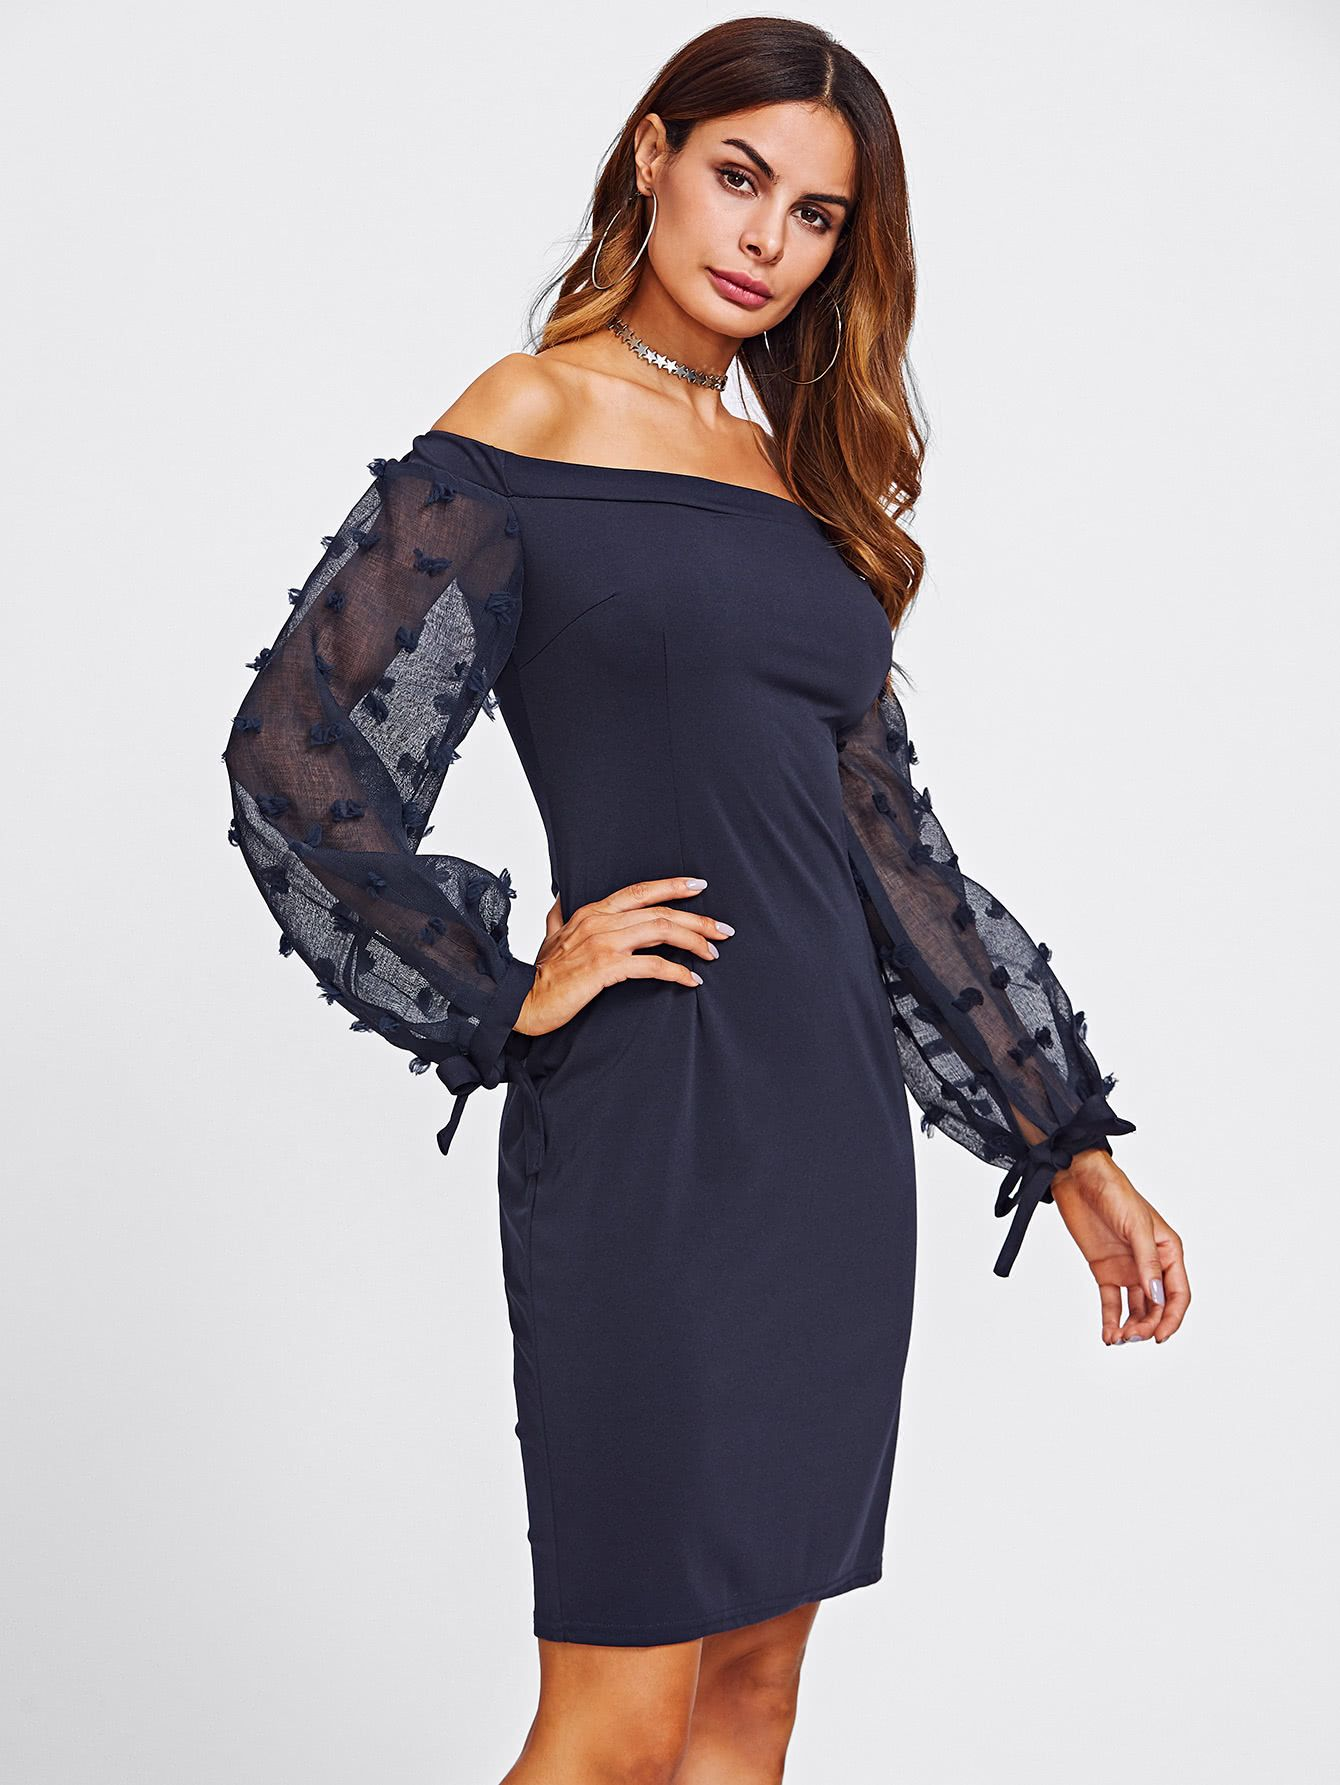 5505333aa01ec Bardot Jacquard Mesh Sleeve Slit Back Dress -SheIn(Sheinside) | It's ...